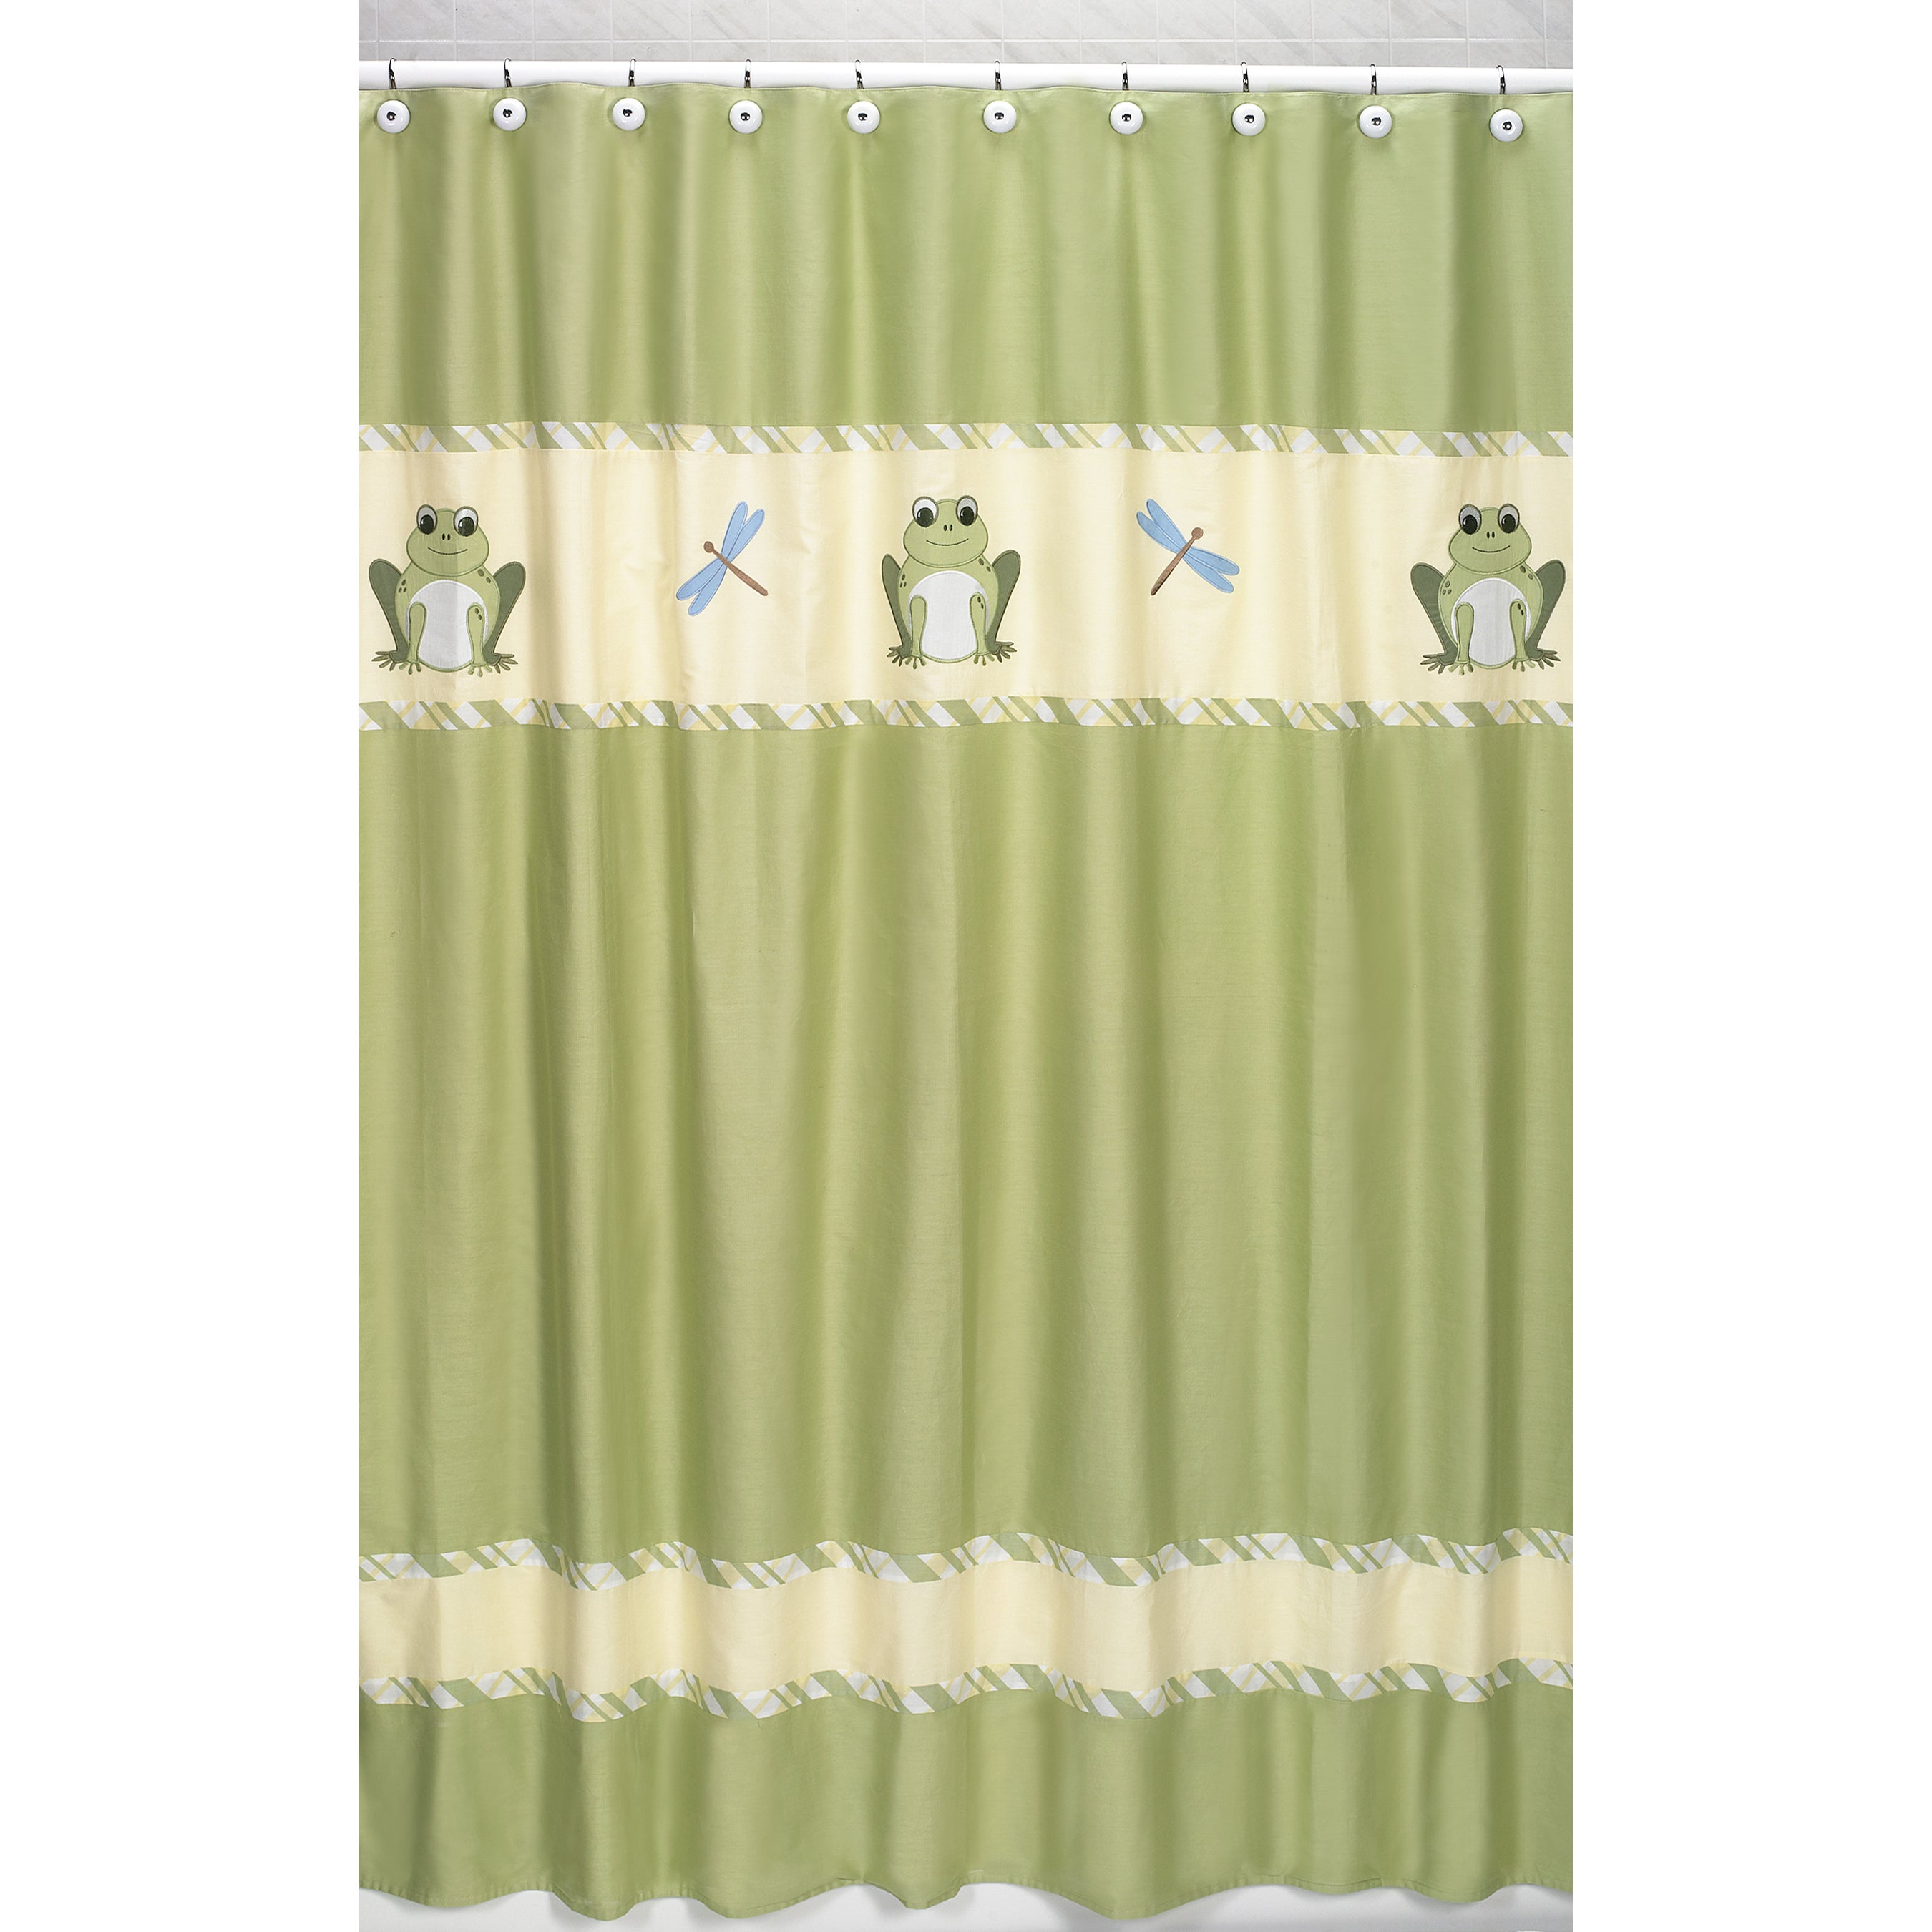 Sweet Jojo Designs Leap Frog Kids Shower Curtain at Sears.com